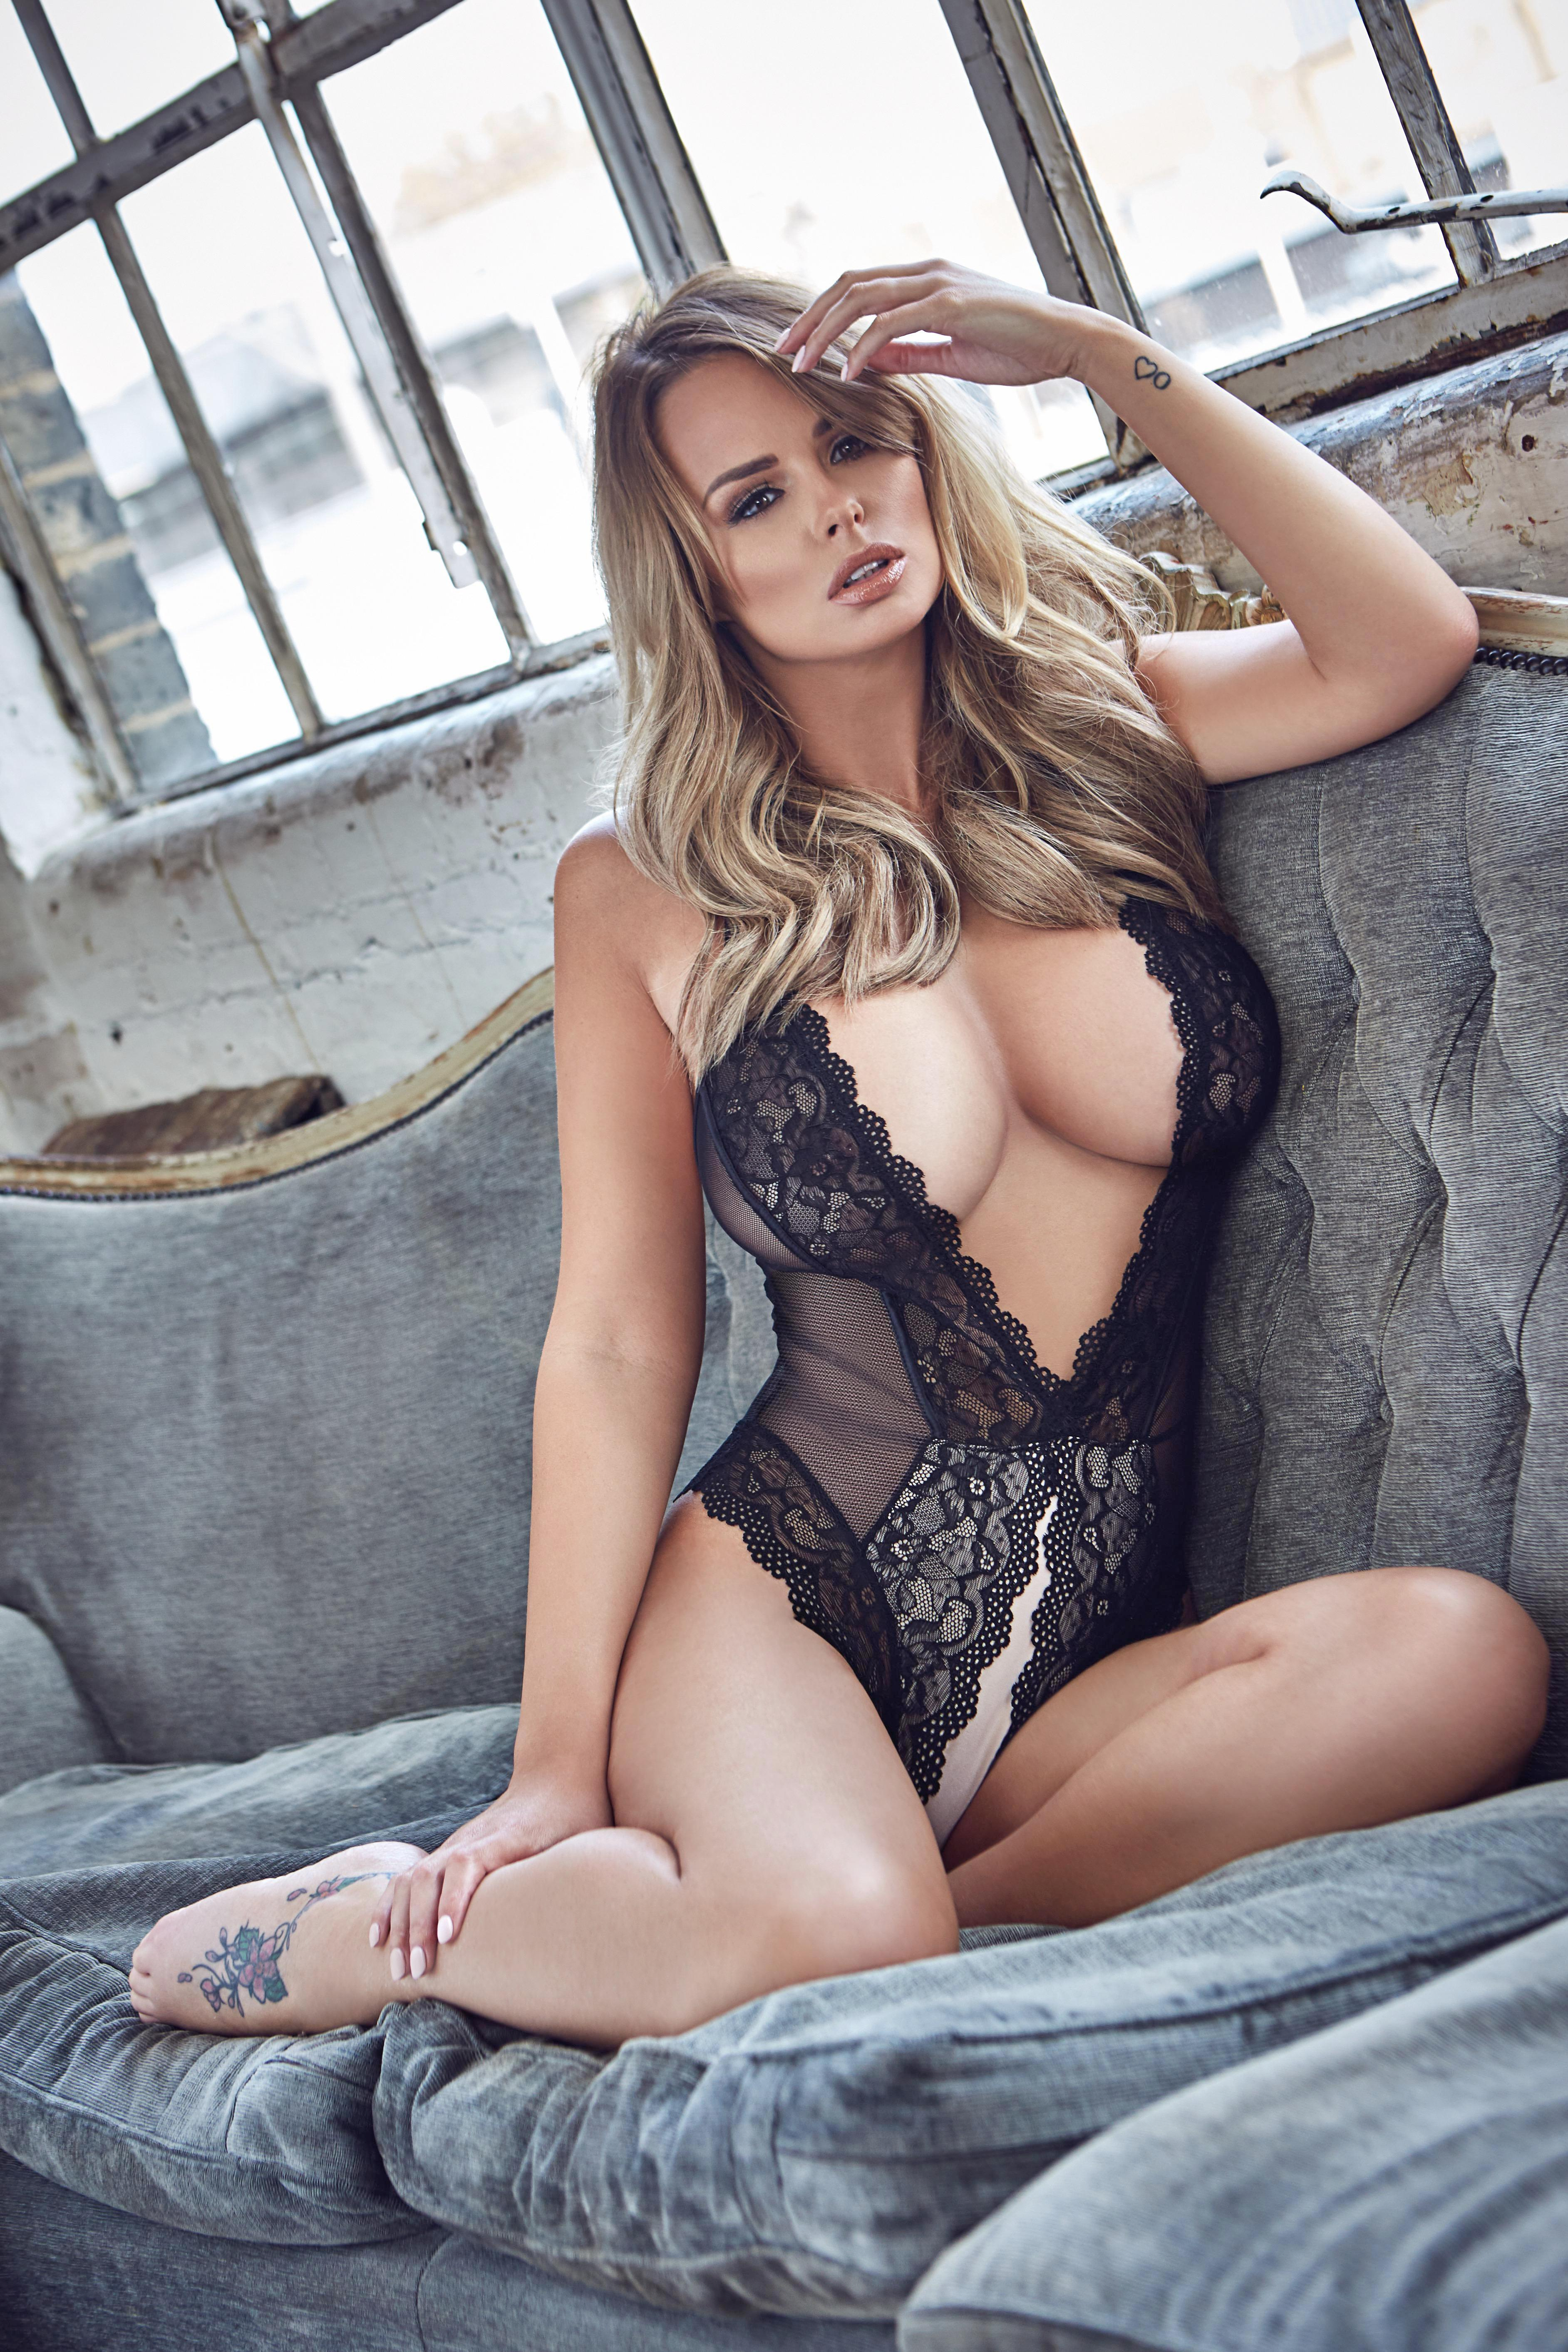 Page 3 Star Rhian Sugden Shows Off Her Lace Body Suit In Her Pertaining To The Sun Page 3 Girls 2020 Calendar